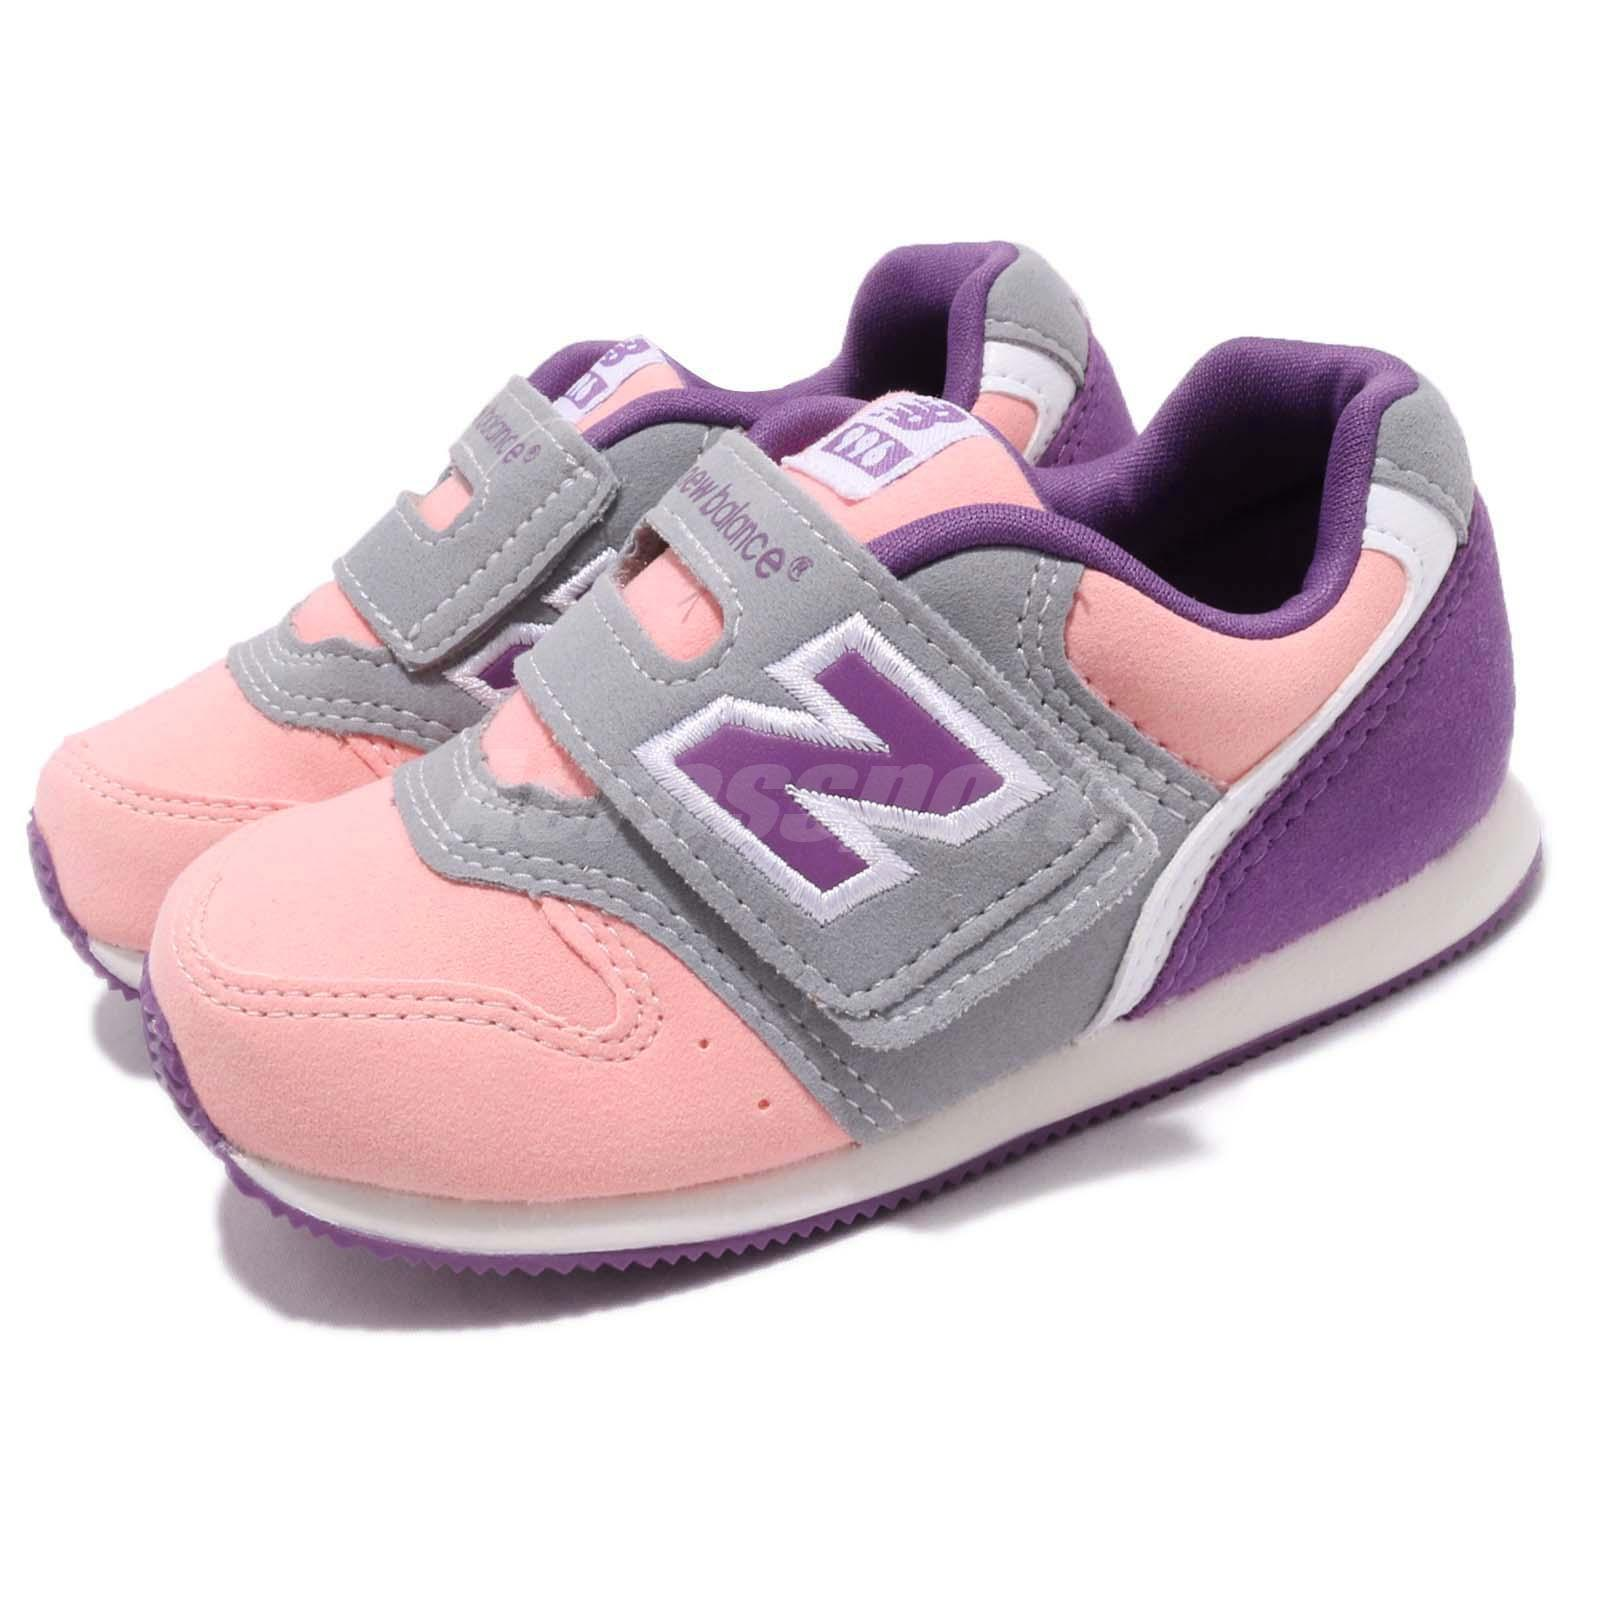 low priced 6f207 16a53 Details about New Balance FS996PP W Wide Pink Purple Grey TD Toddler Infant  Baby Shoe FS996PPW